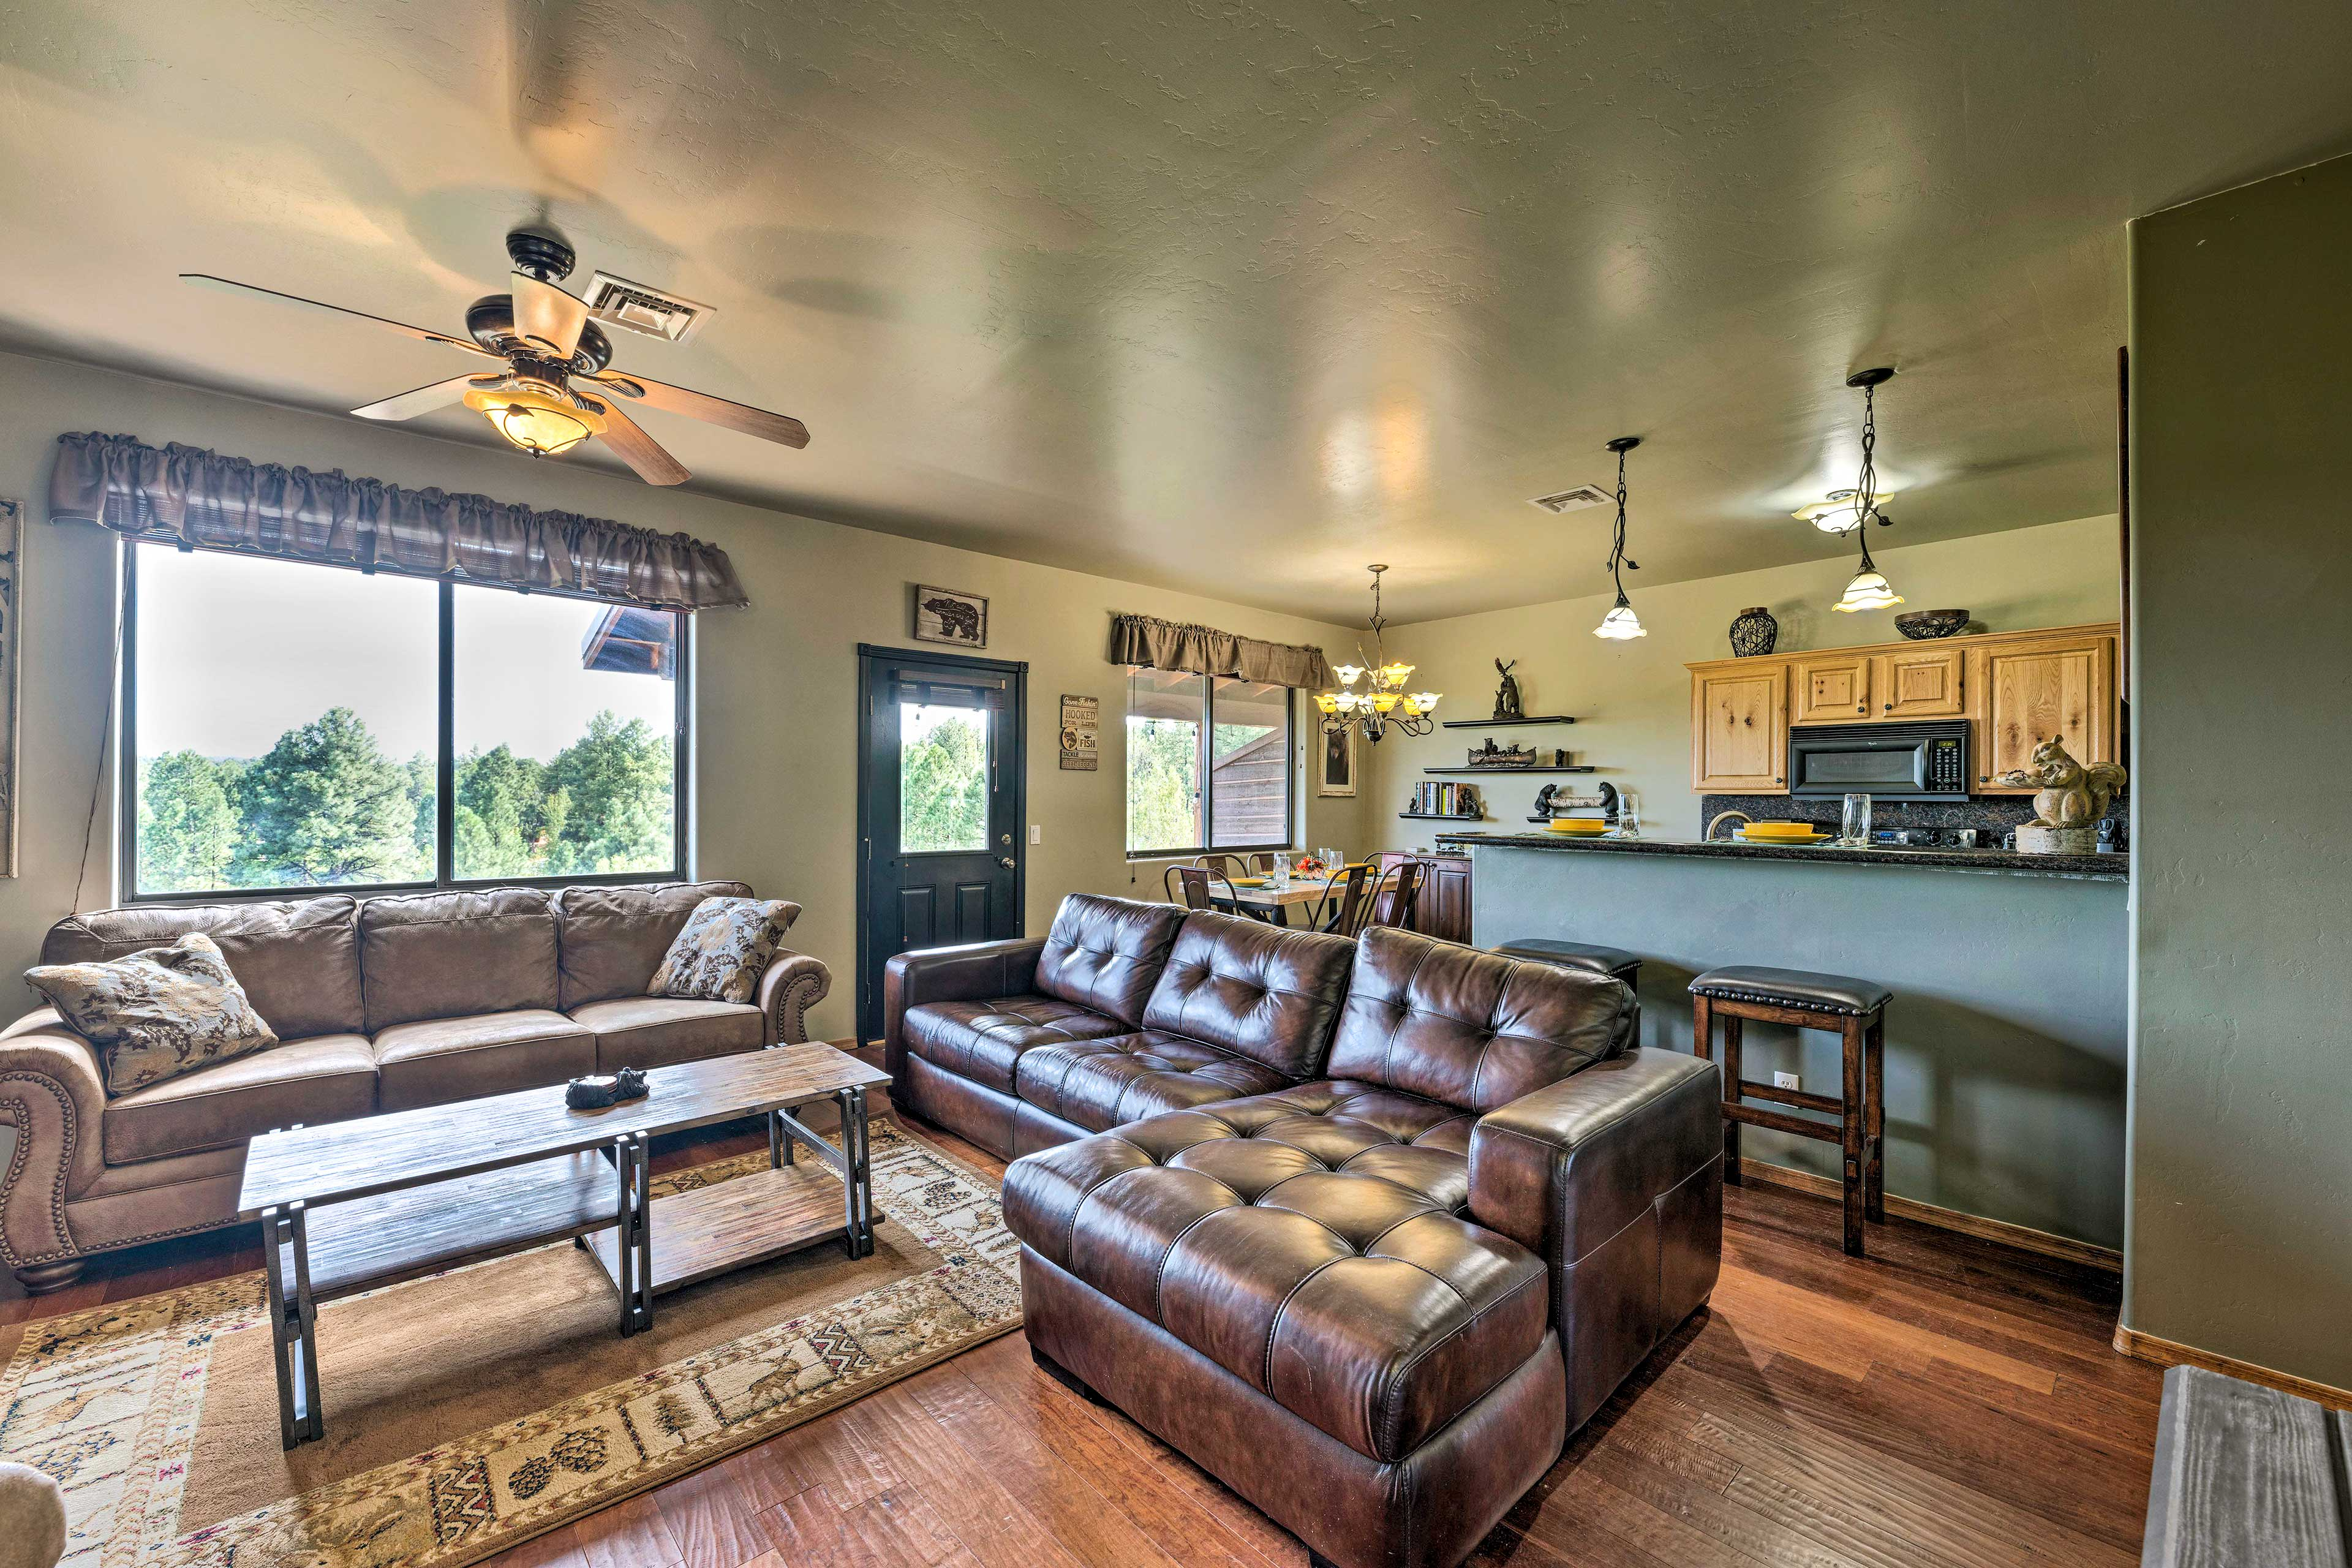 The open floor plan ensures the group's chef won't get left out of the action.